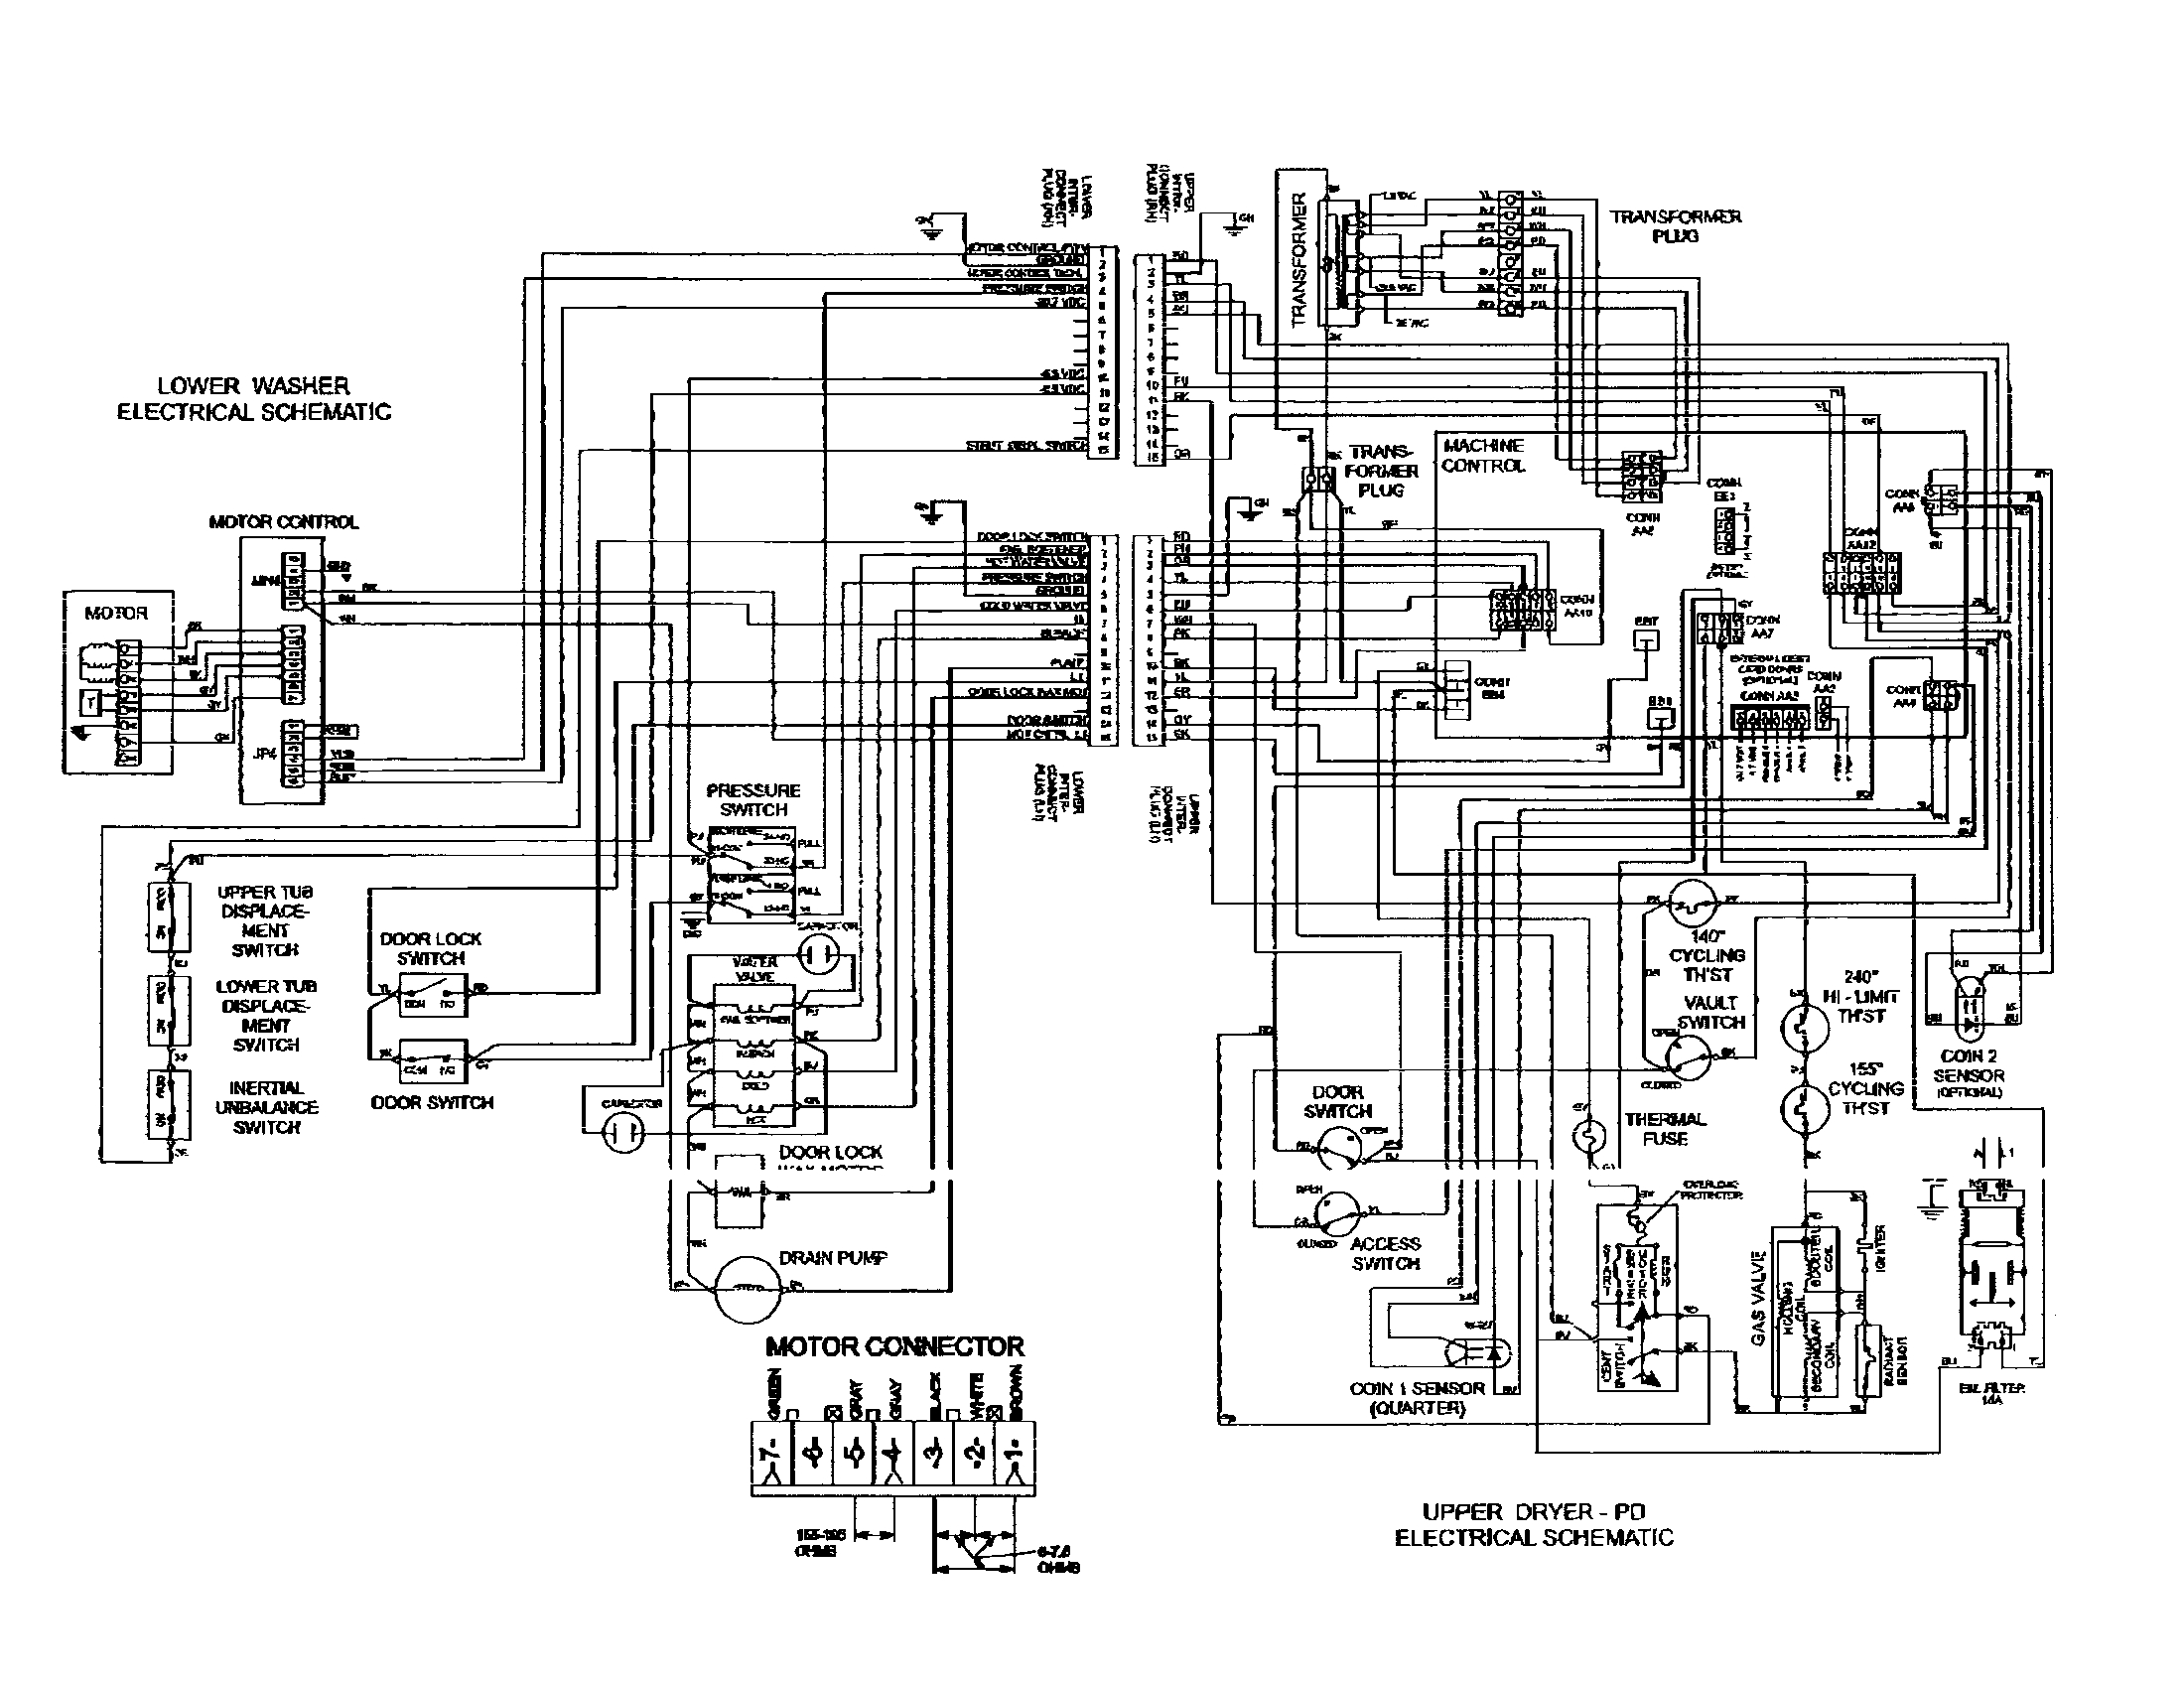 wiring diagram for maytag washing machine